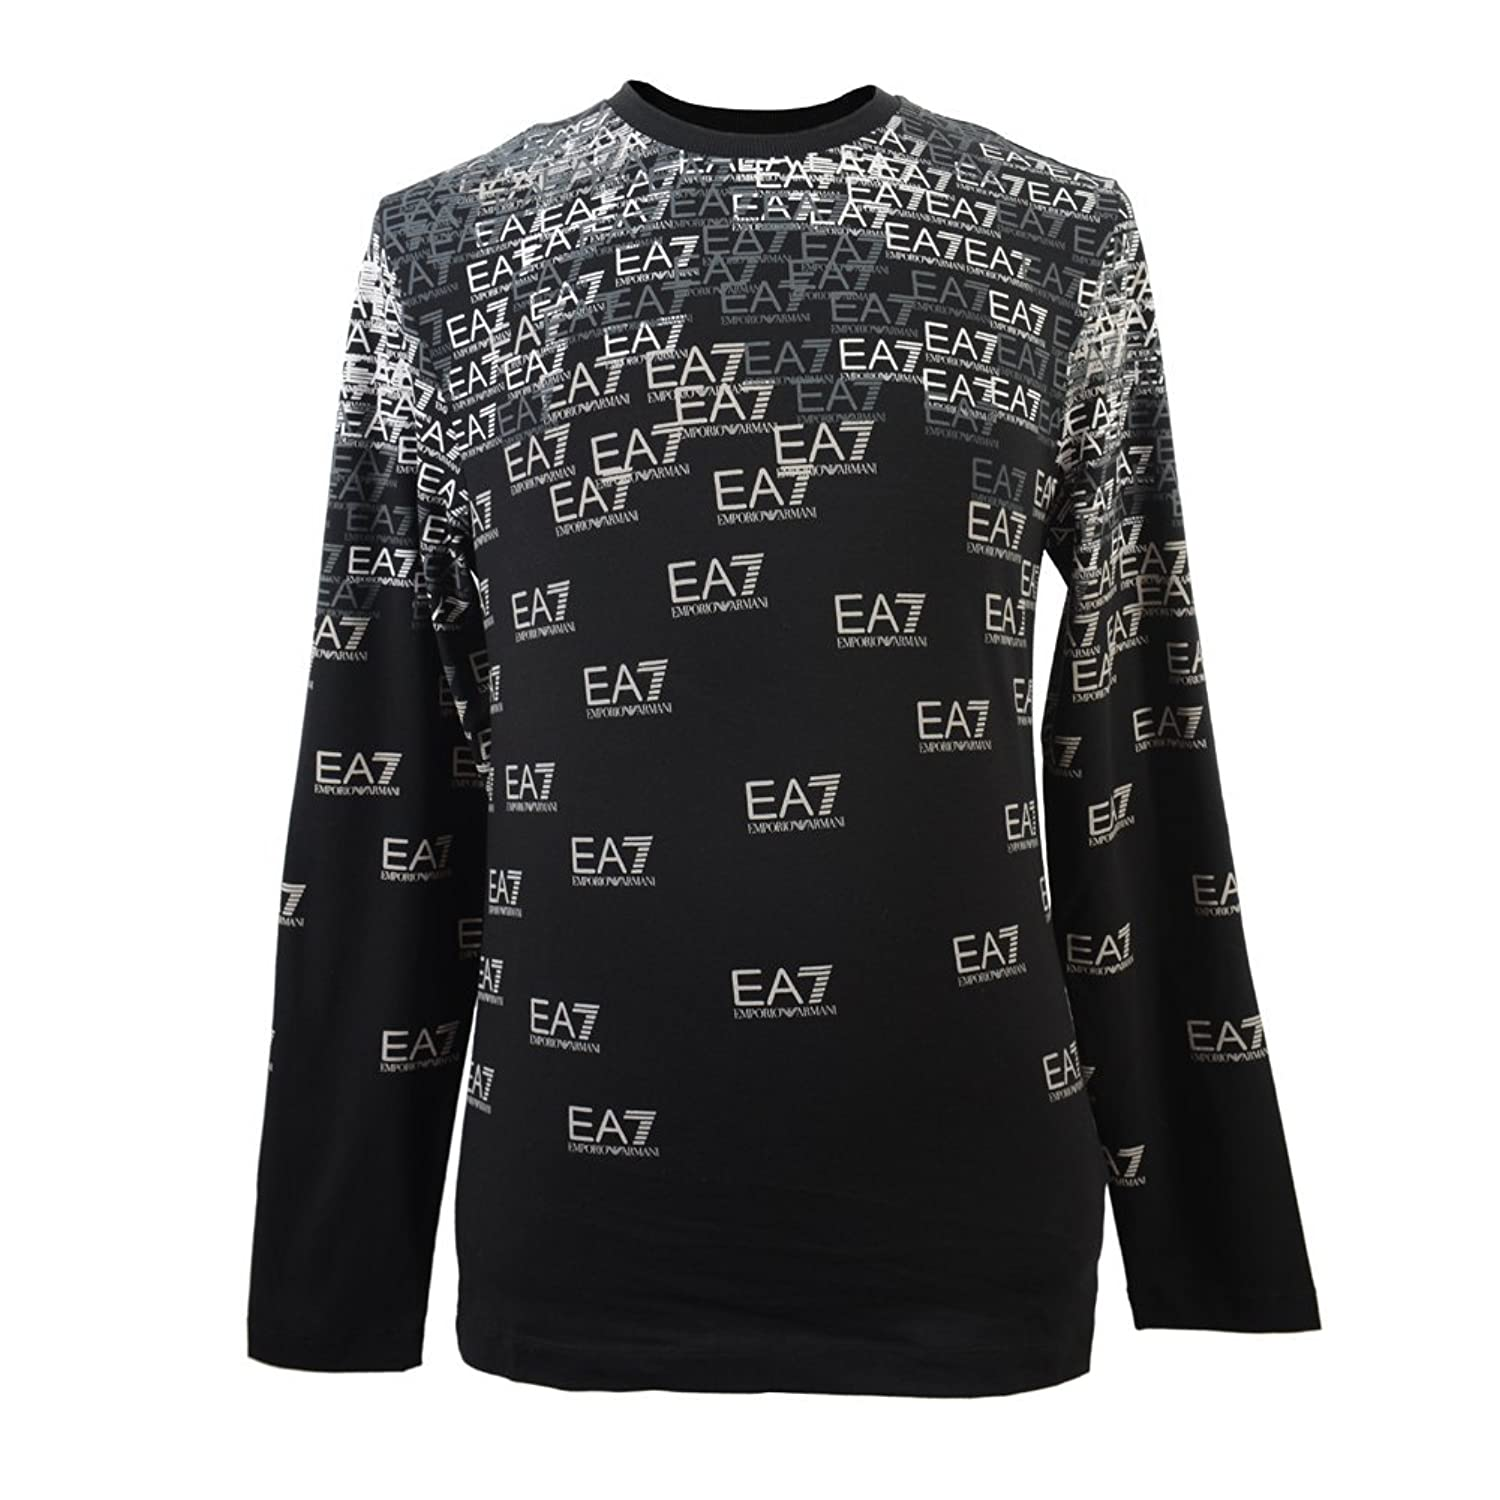 Emporio Armani EA7 Men's Train Premium Long Sleeve T-Shirt цены онлайн